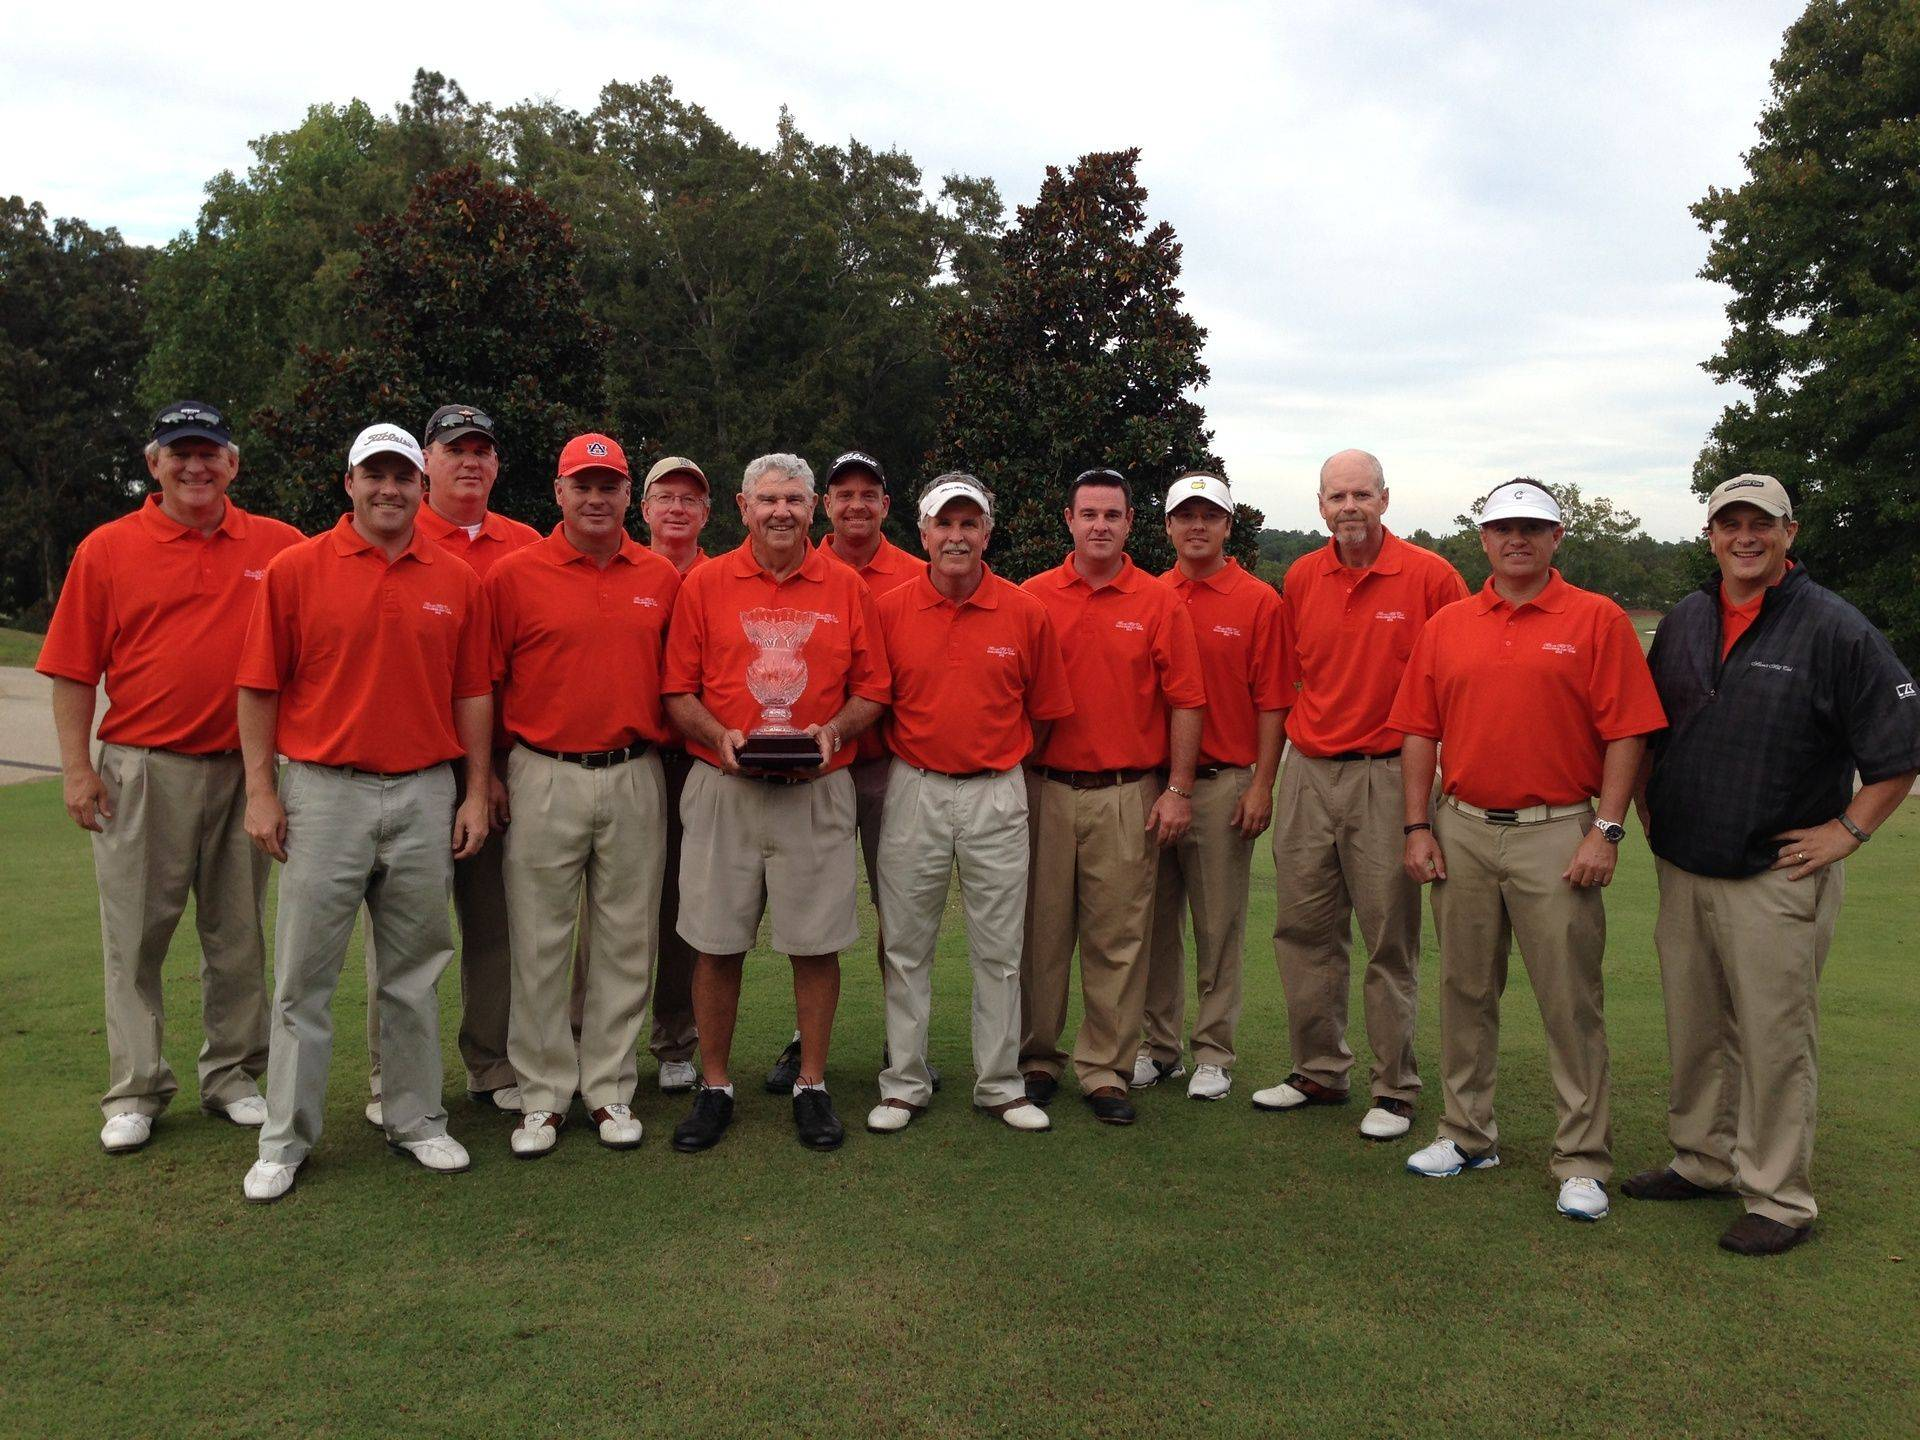 2013 Moore'sMill Club defeated Saugahatchee CC in the annual Challenge Cup matches by a score of 12 1/2 to 11 1/2 Team Members L-R Jim Fullington, James Salter, Steve Graham Troy Maxwell, Philip Minor, Windell Humphries, Bruce Haman, Steve Tillery, Nathan Turner, Jeff Chastain, Mark Halpin and Tommy Roughton. Great Playing Guys!